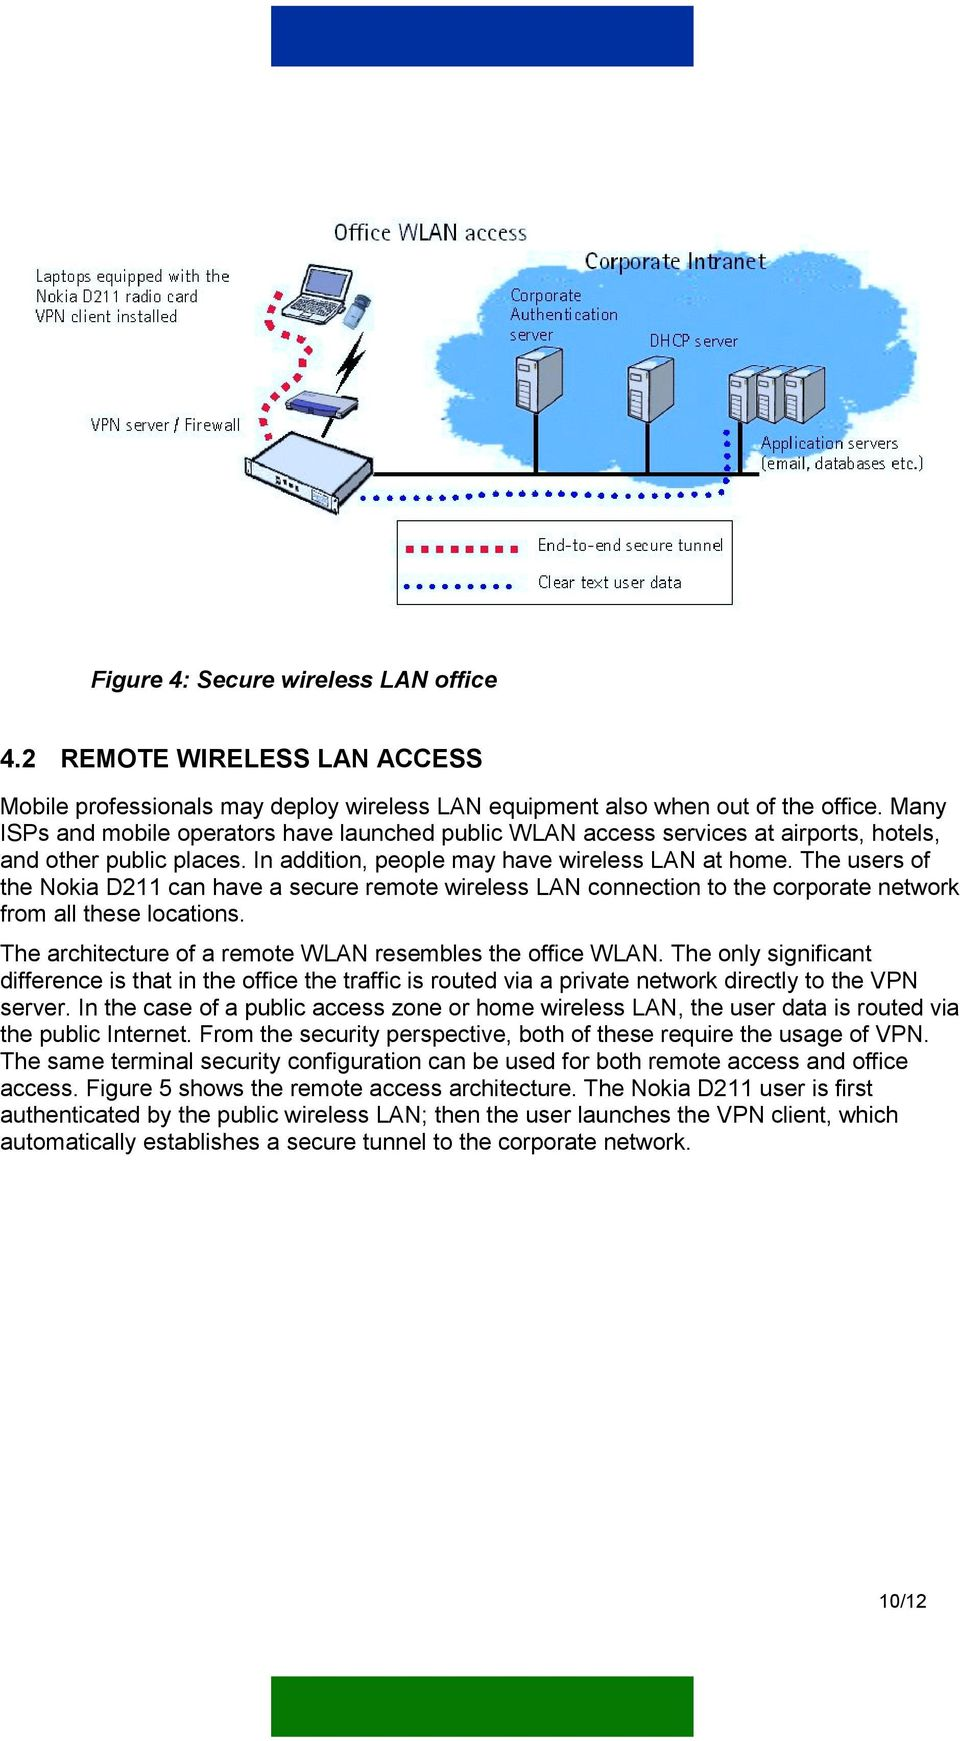 The users of the Nokia D211 can have a secure remote wireless LAN connection to the corporate network from all these locations. The architecture of a remote WLAN resembles the office WLAN.